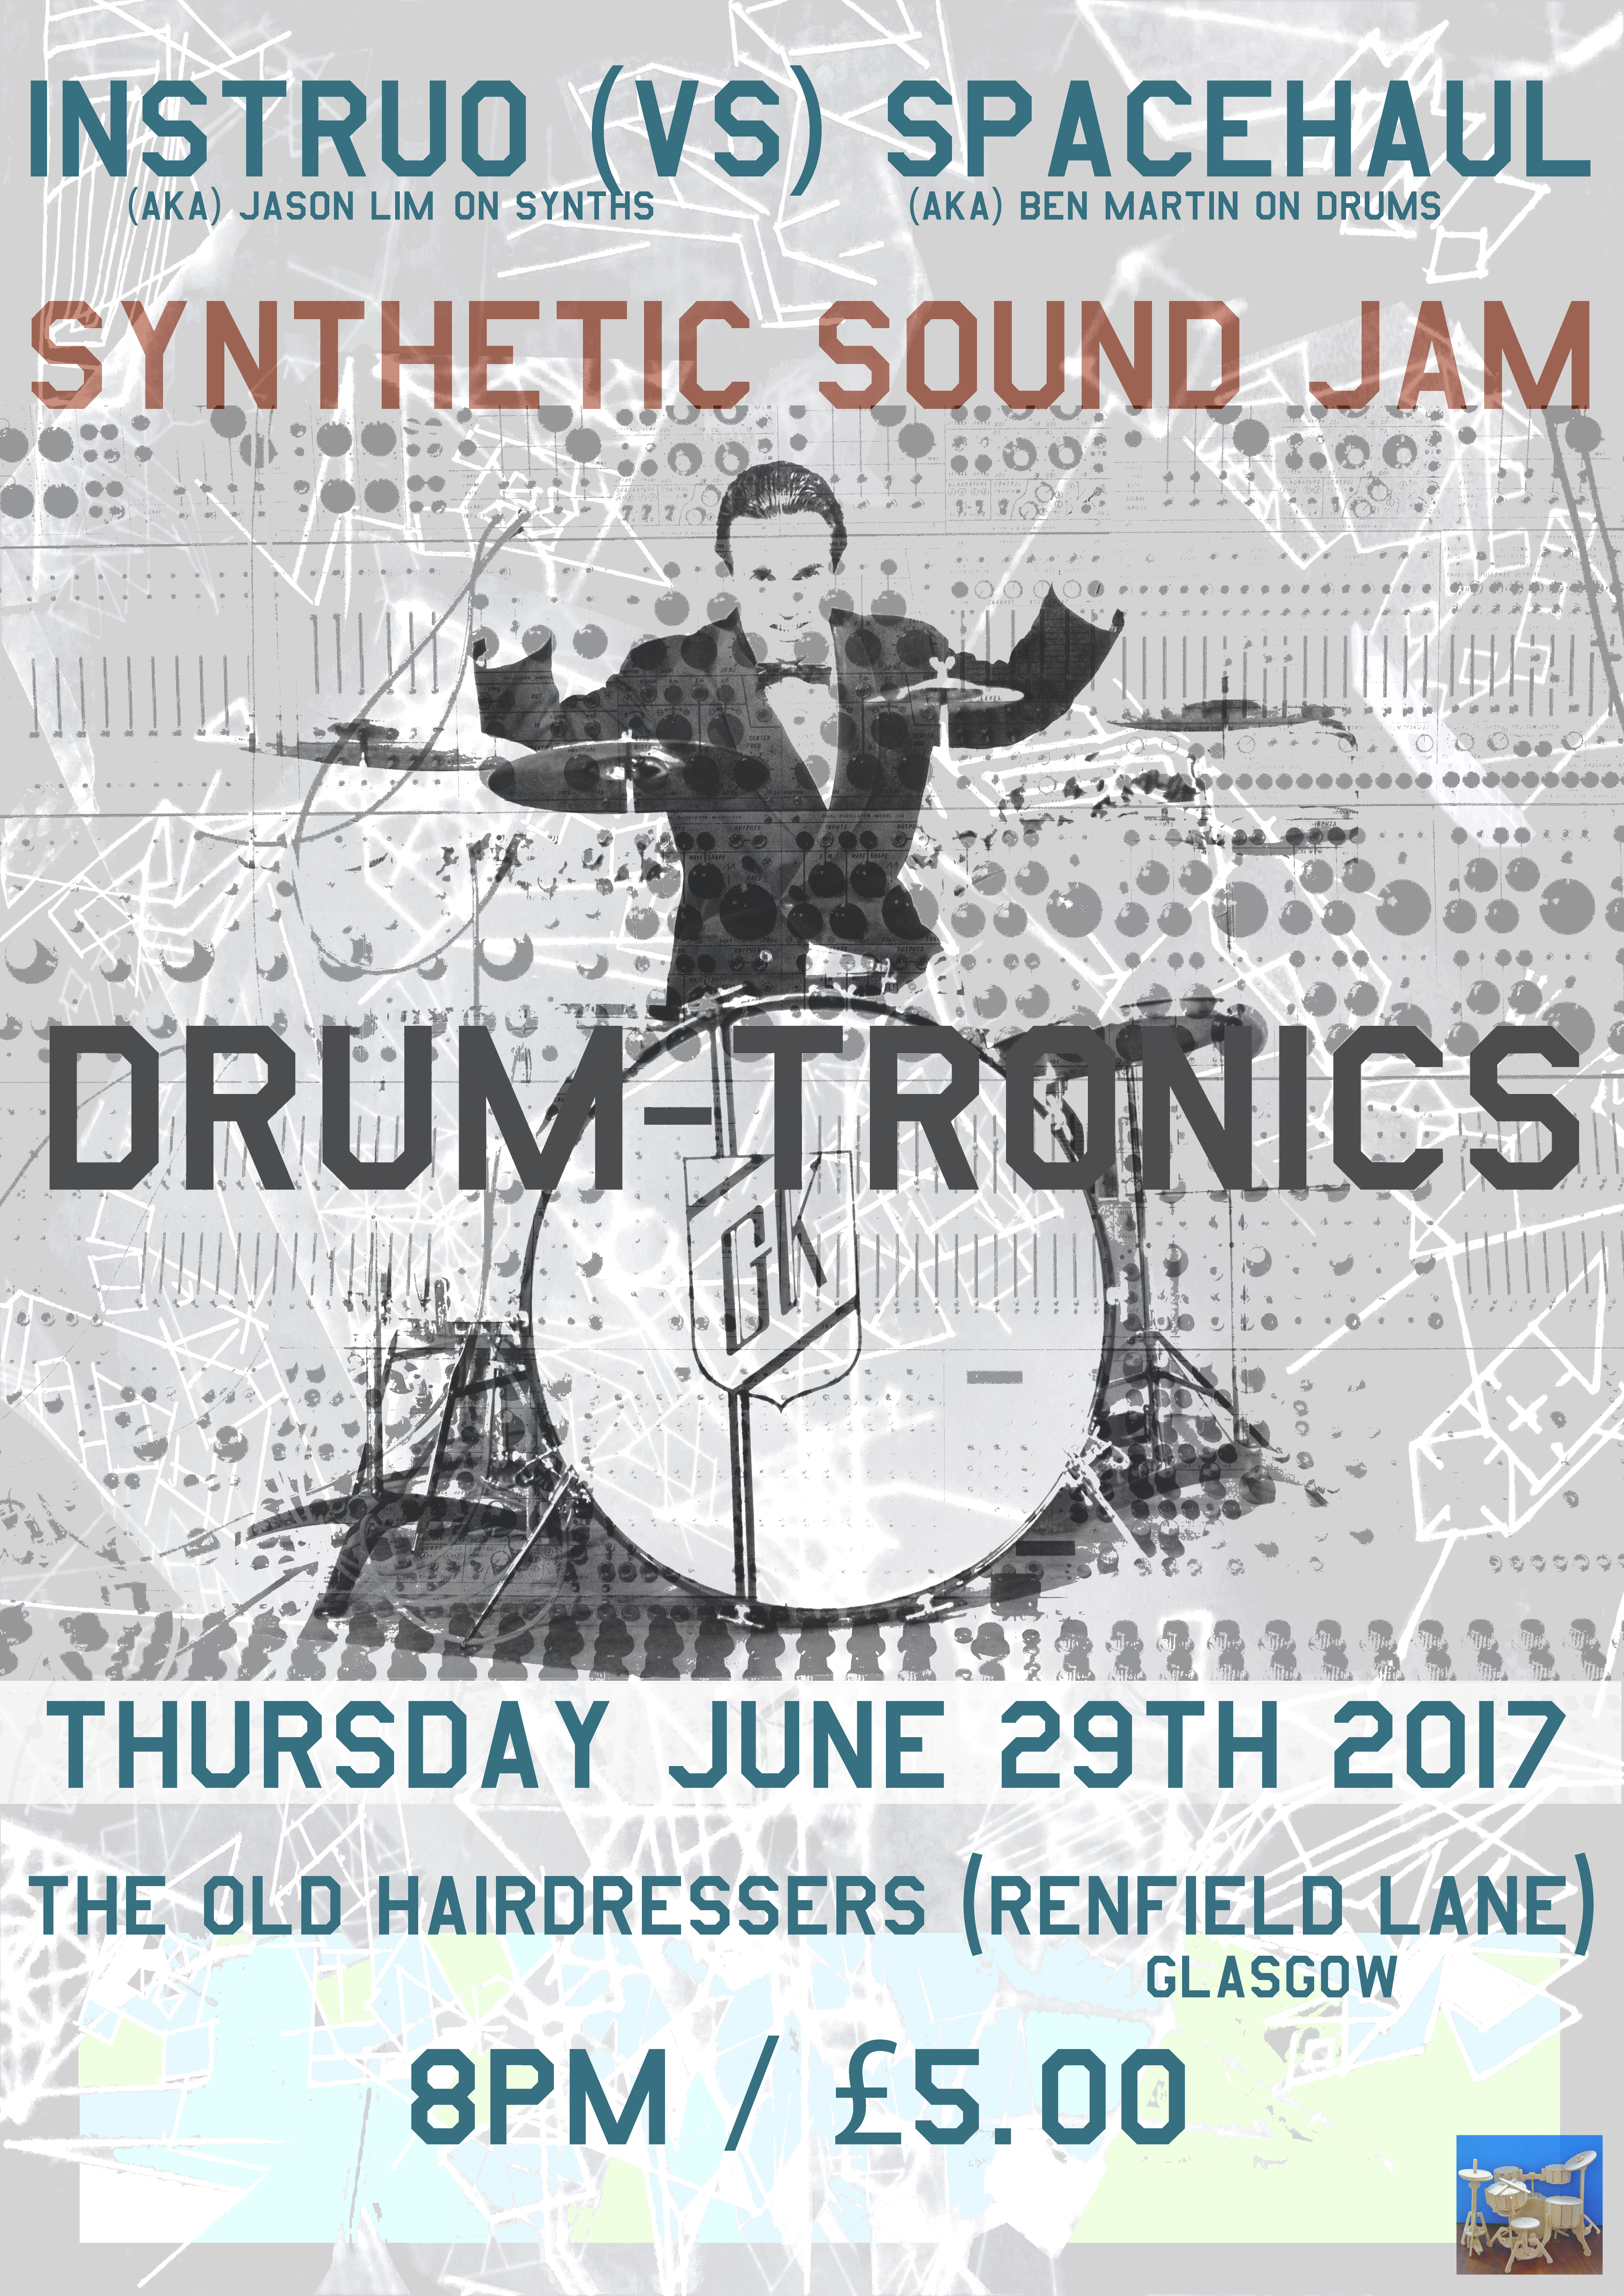 Drum-Tronics on 29th June